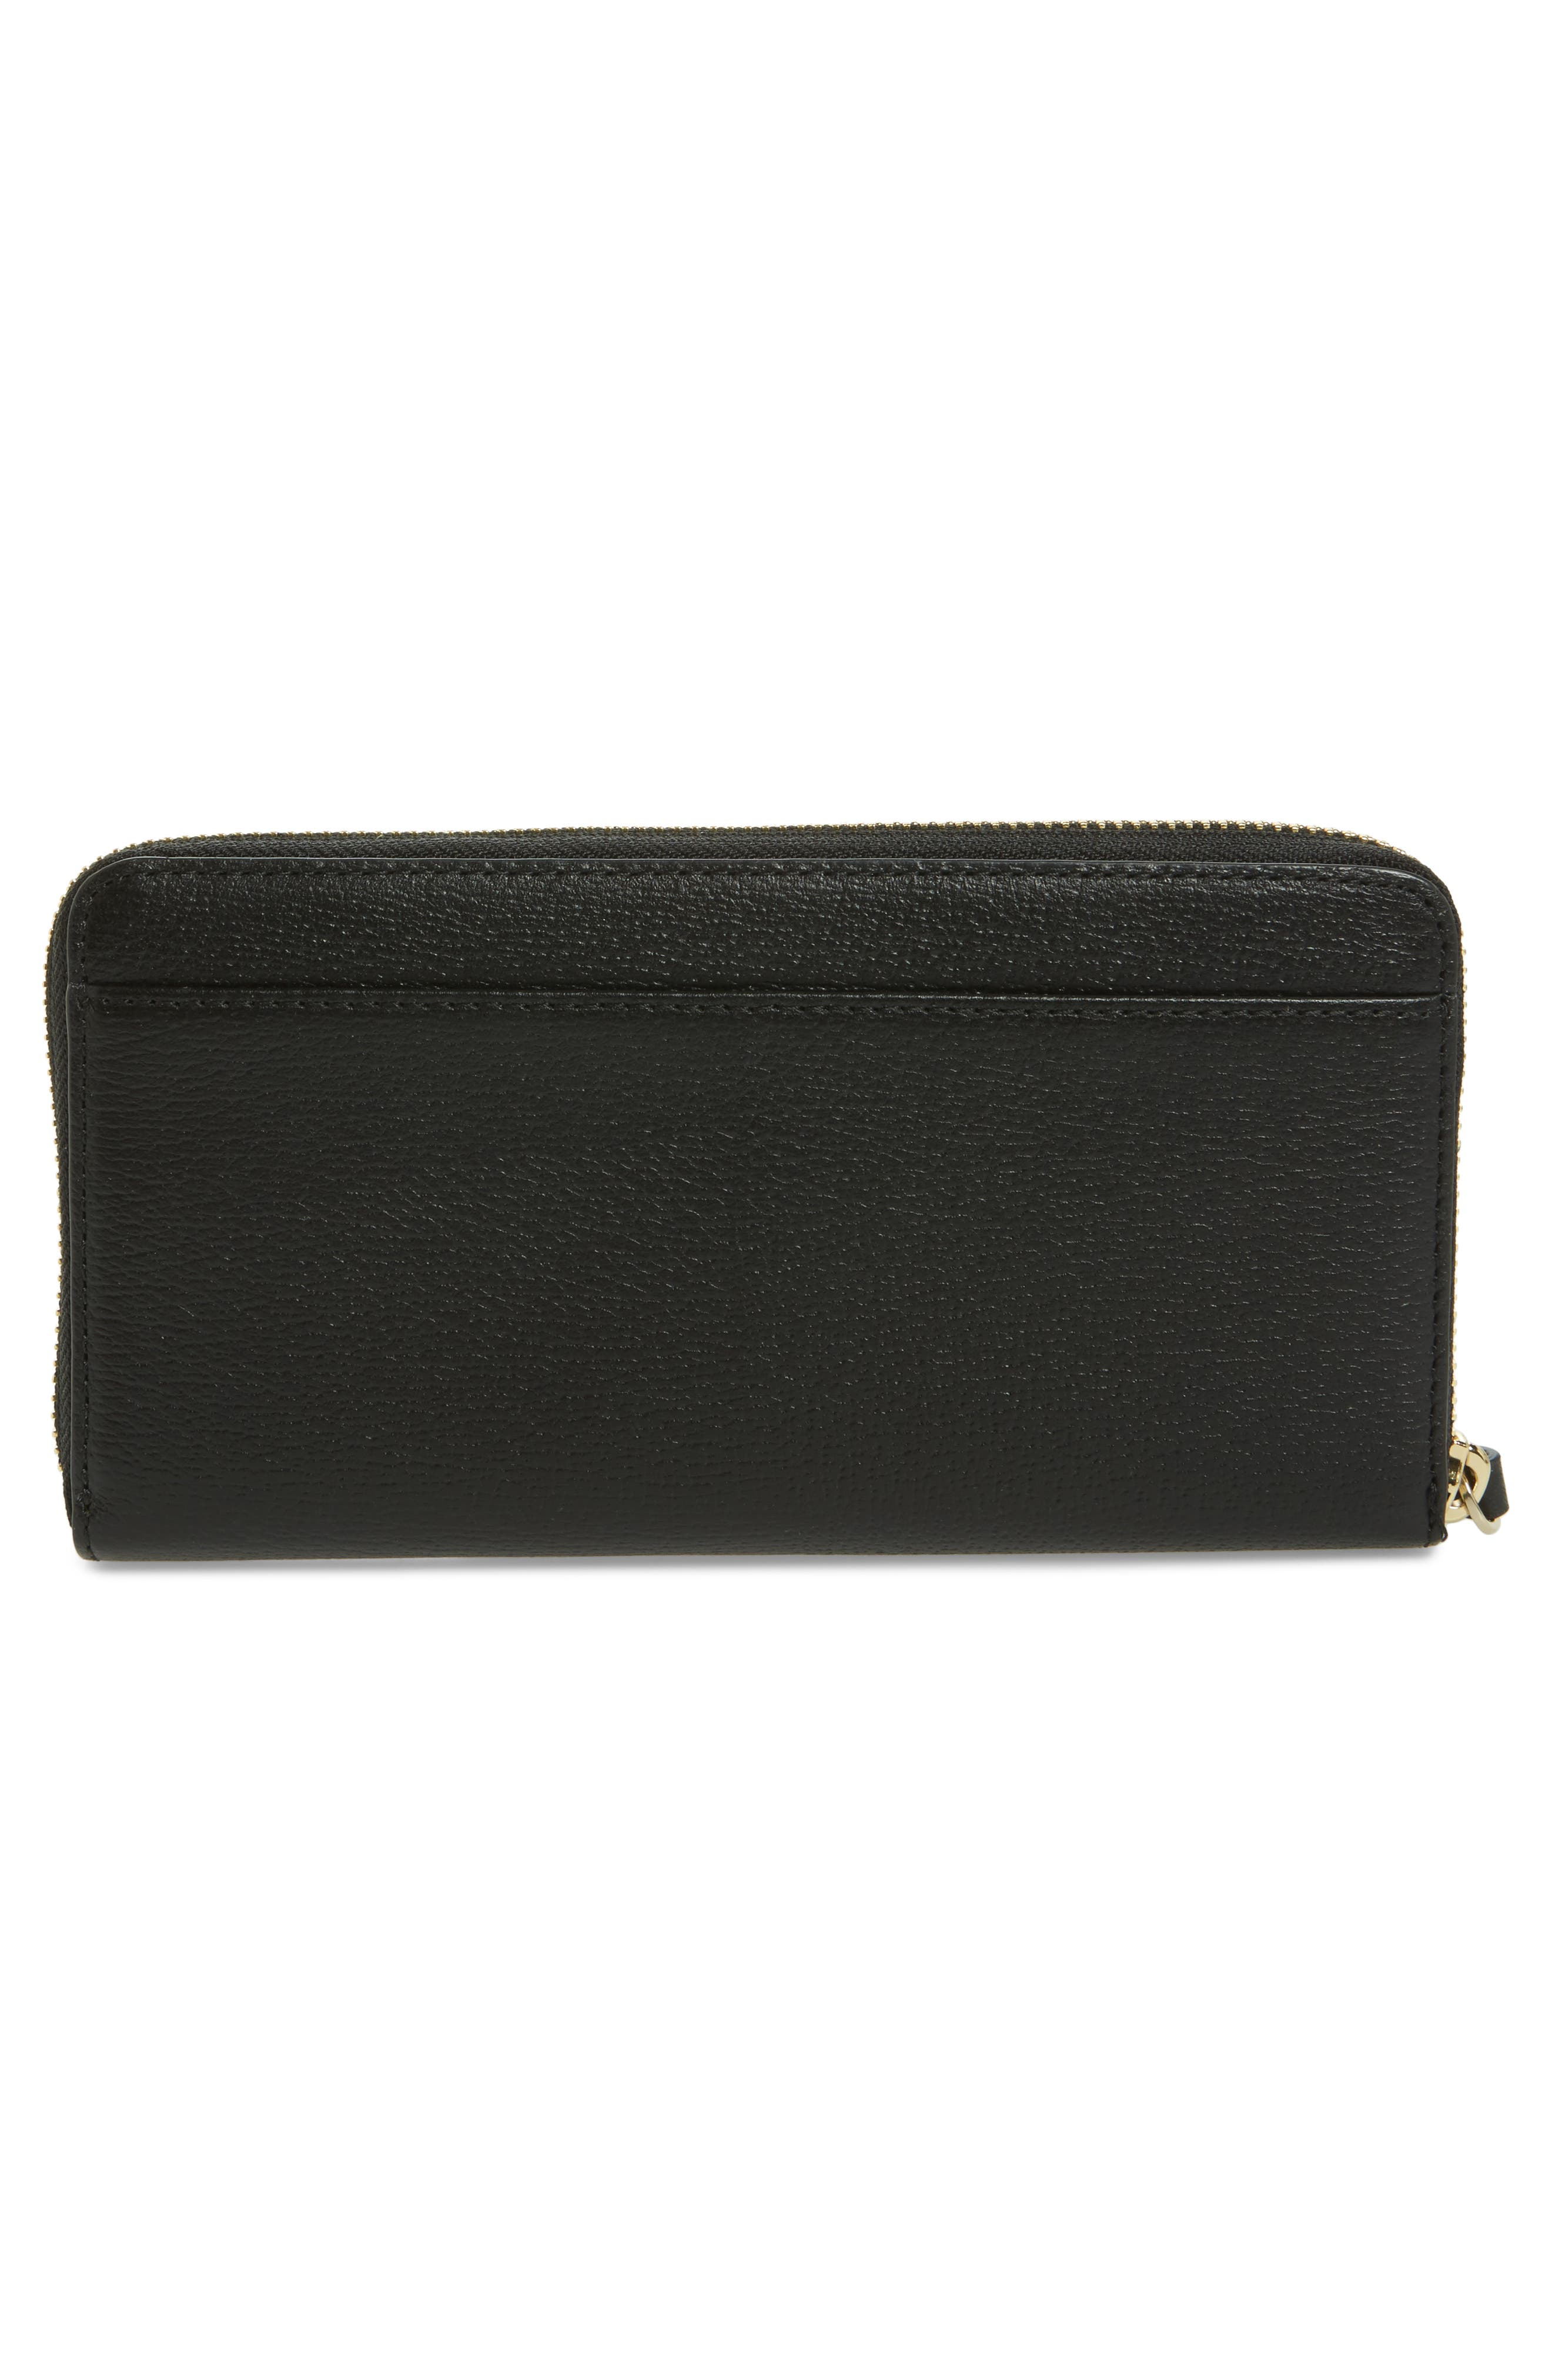 olive drive - lacey bow leather wallet,                             Alternate thumbnail 3, color,                             001